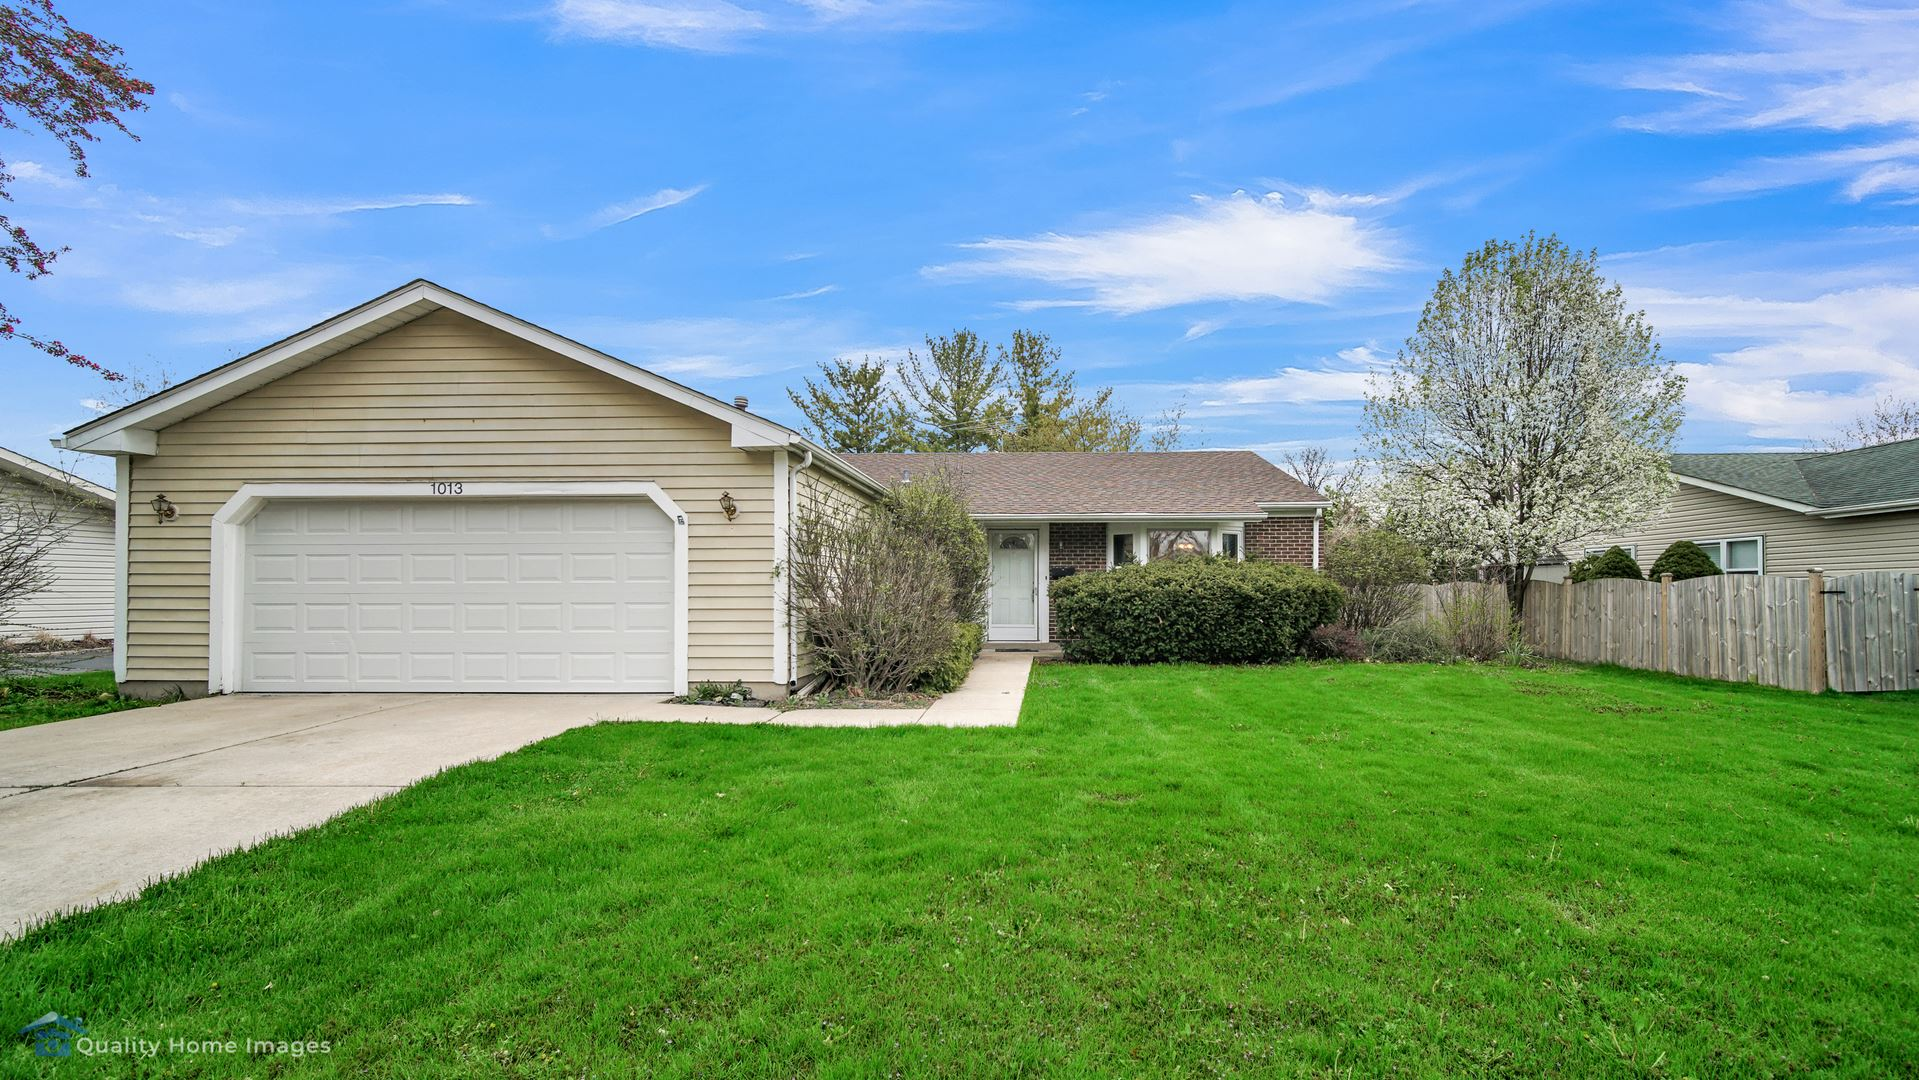 1013 N Country Lane, Palatine, IL 60067 - #: 10701791